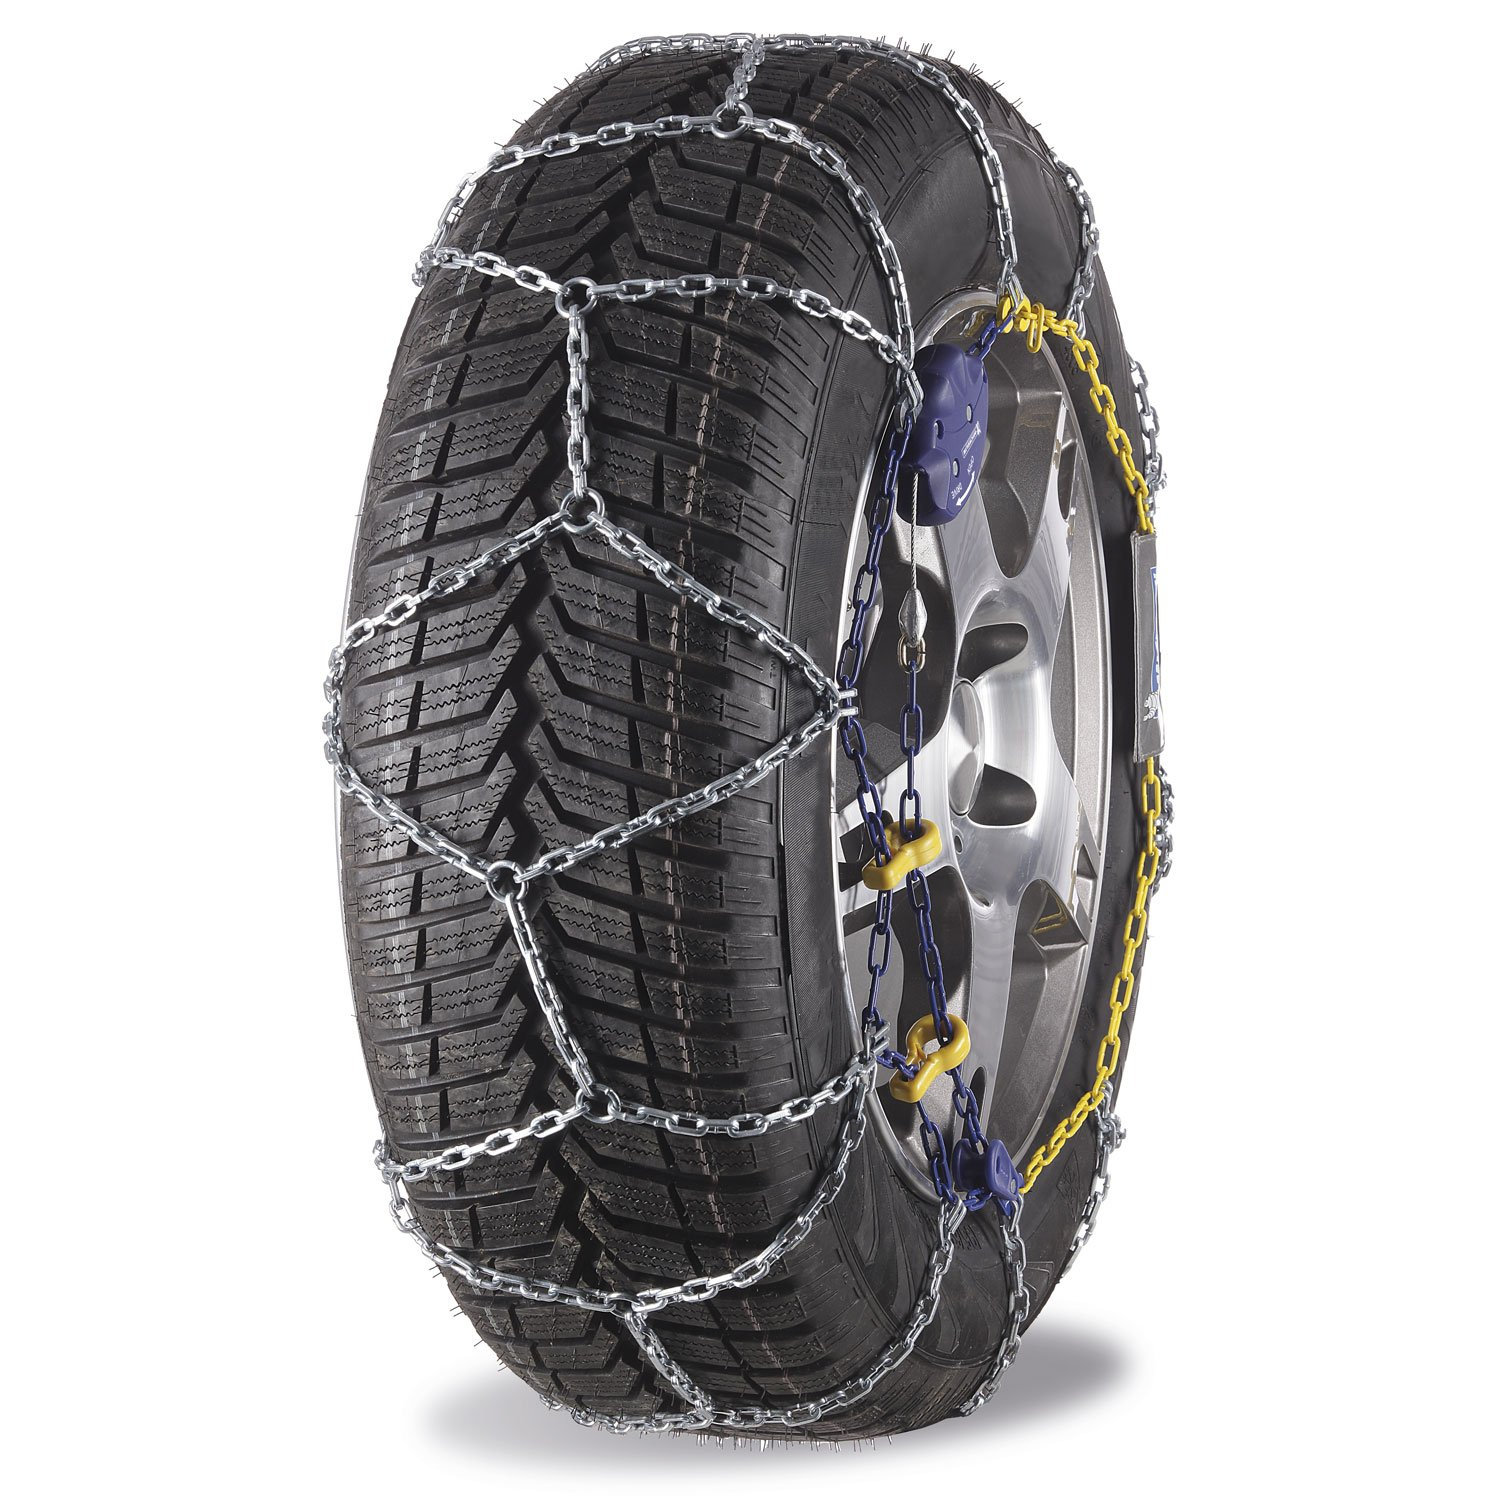 Michelin 92319 Snow chains, M2 Extreme Grip Automatic 67, ABS and ESP compatible, TÜ V/GS and Ö NORM, 2 pieces TÜV/GS and ÖNORM M2 - 67